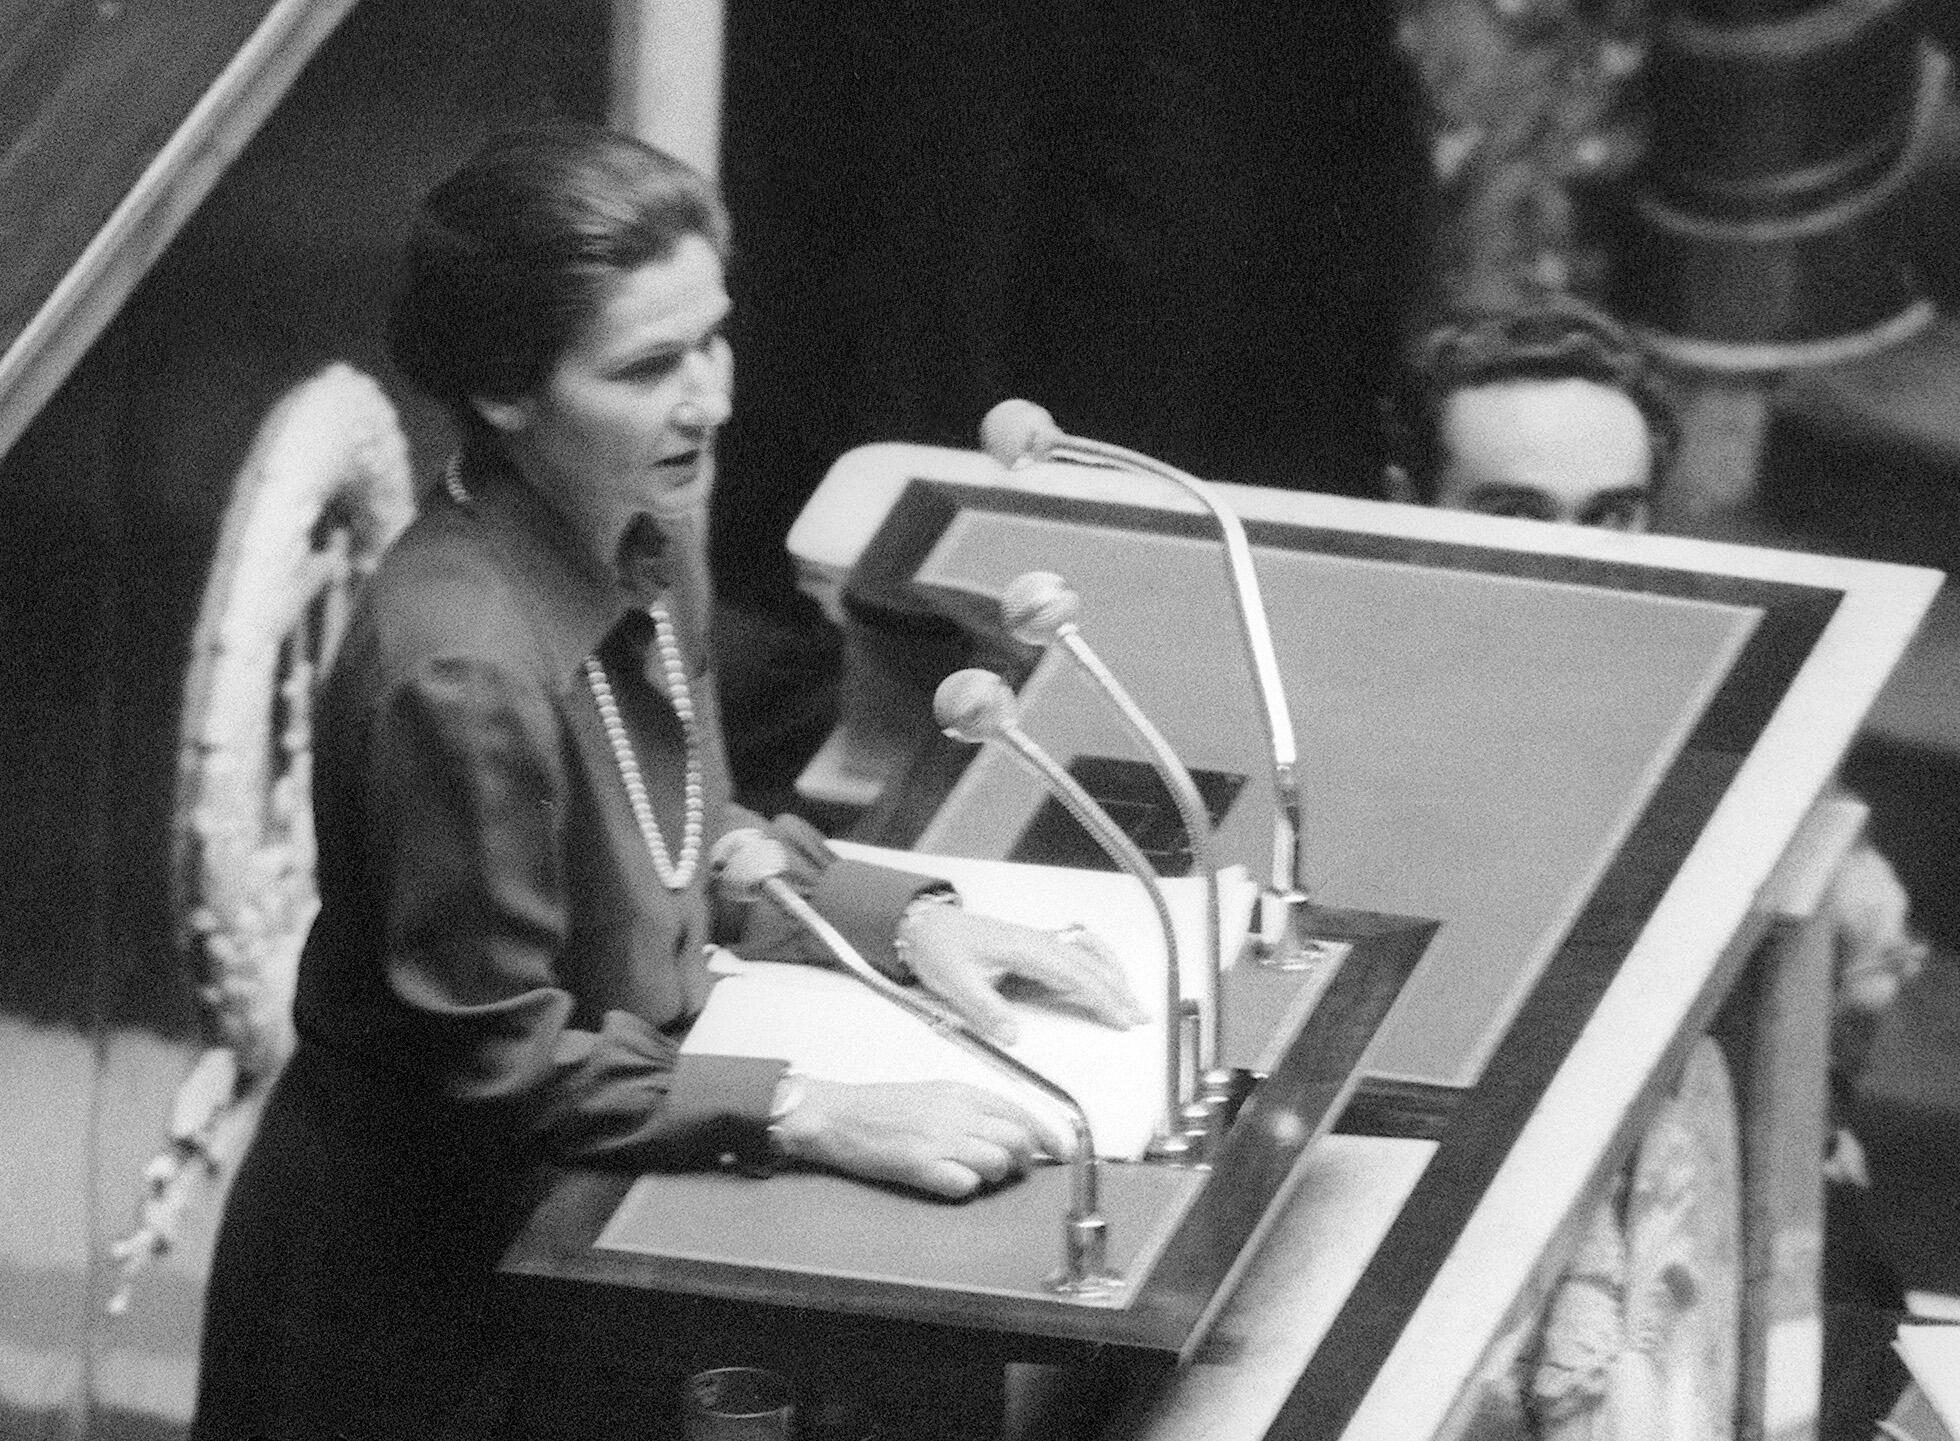 Simone Veil presents the abortion bill to parliament